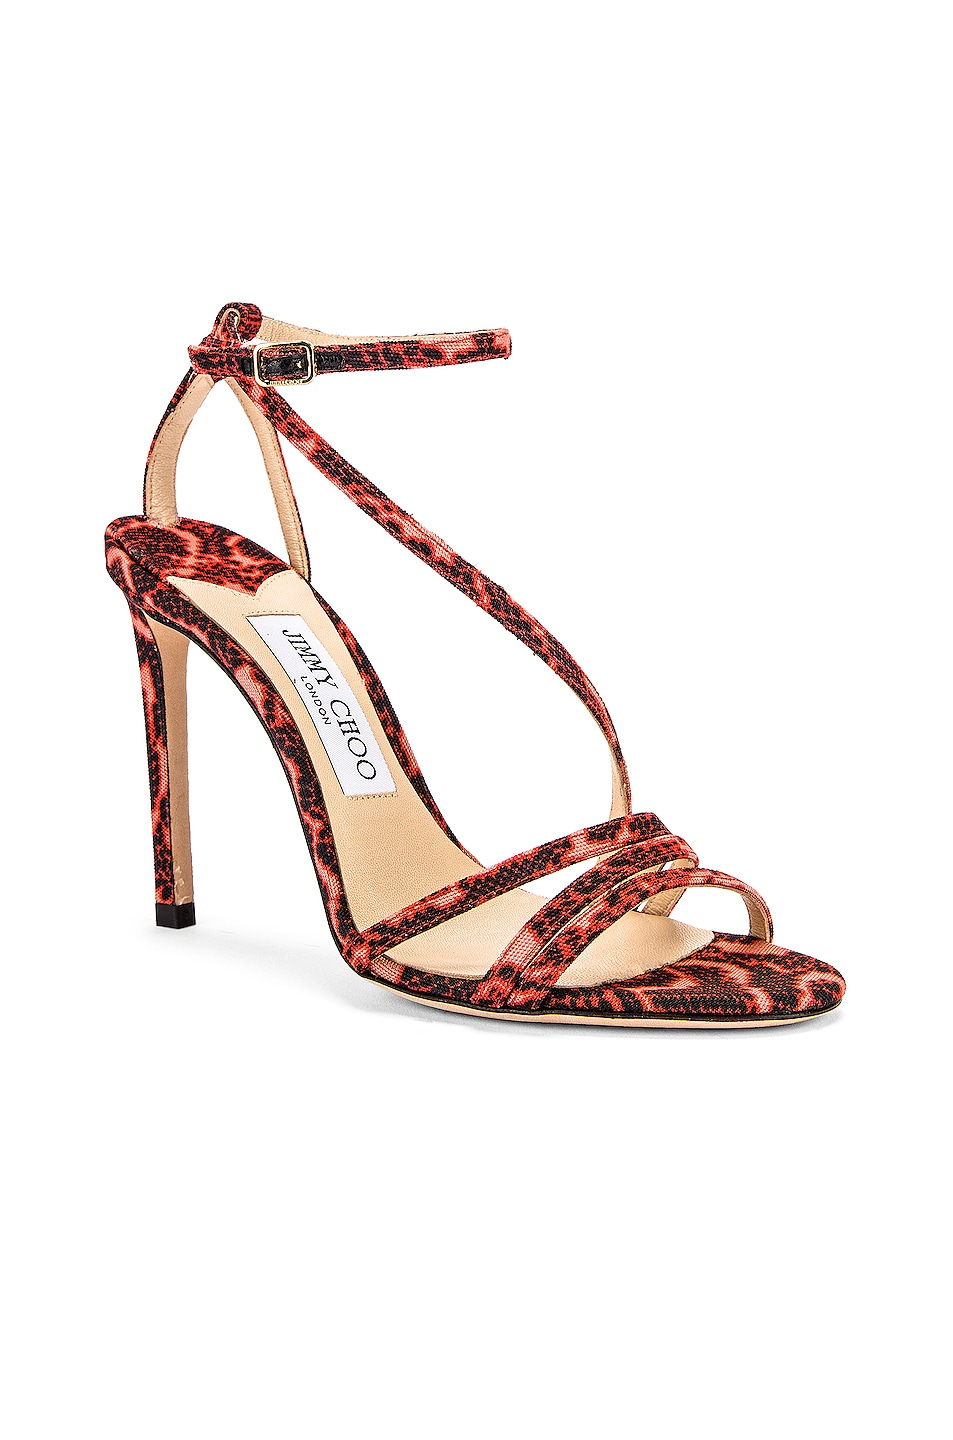 Image 2 of Jimmy Choo Tesca 100 Sandal in Mandarin Red Mix